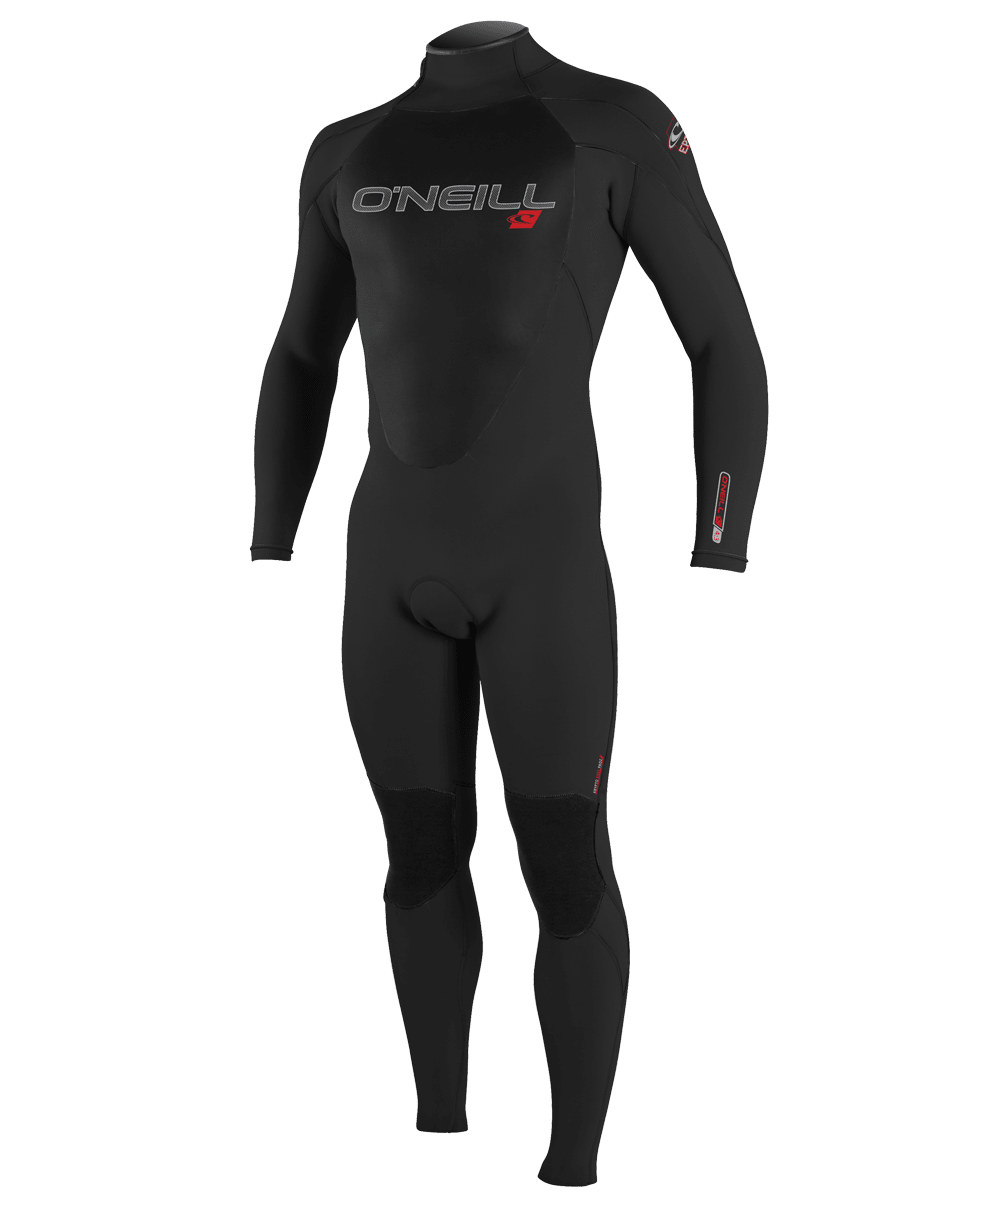 O'NEILL Men's Epic 3/2 mm Wetsuit - NO COLOR